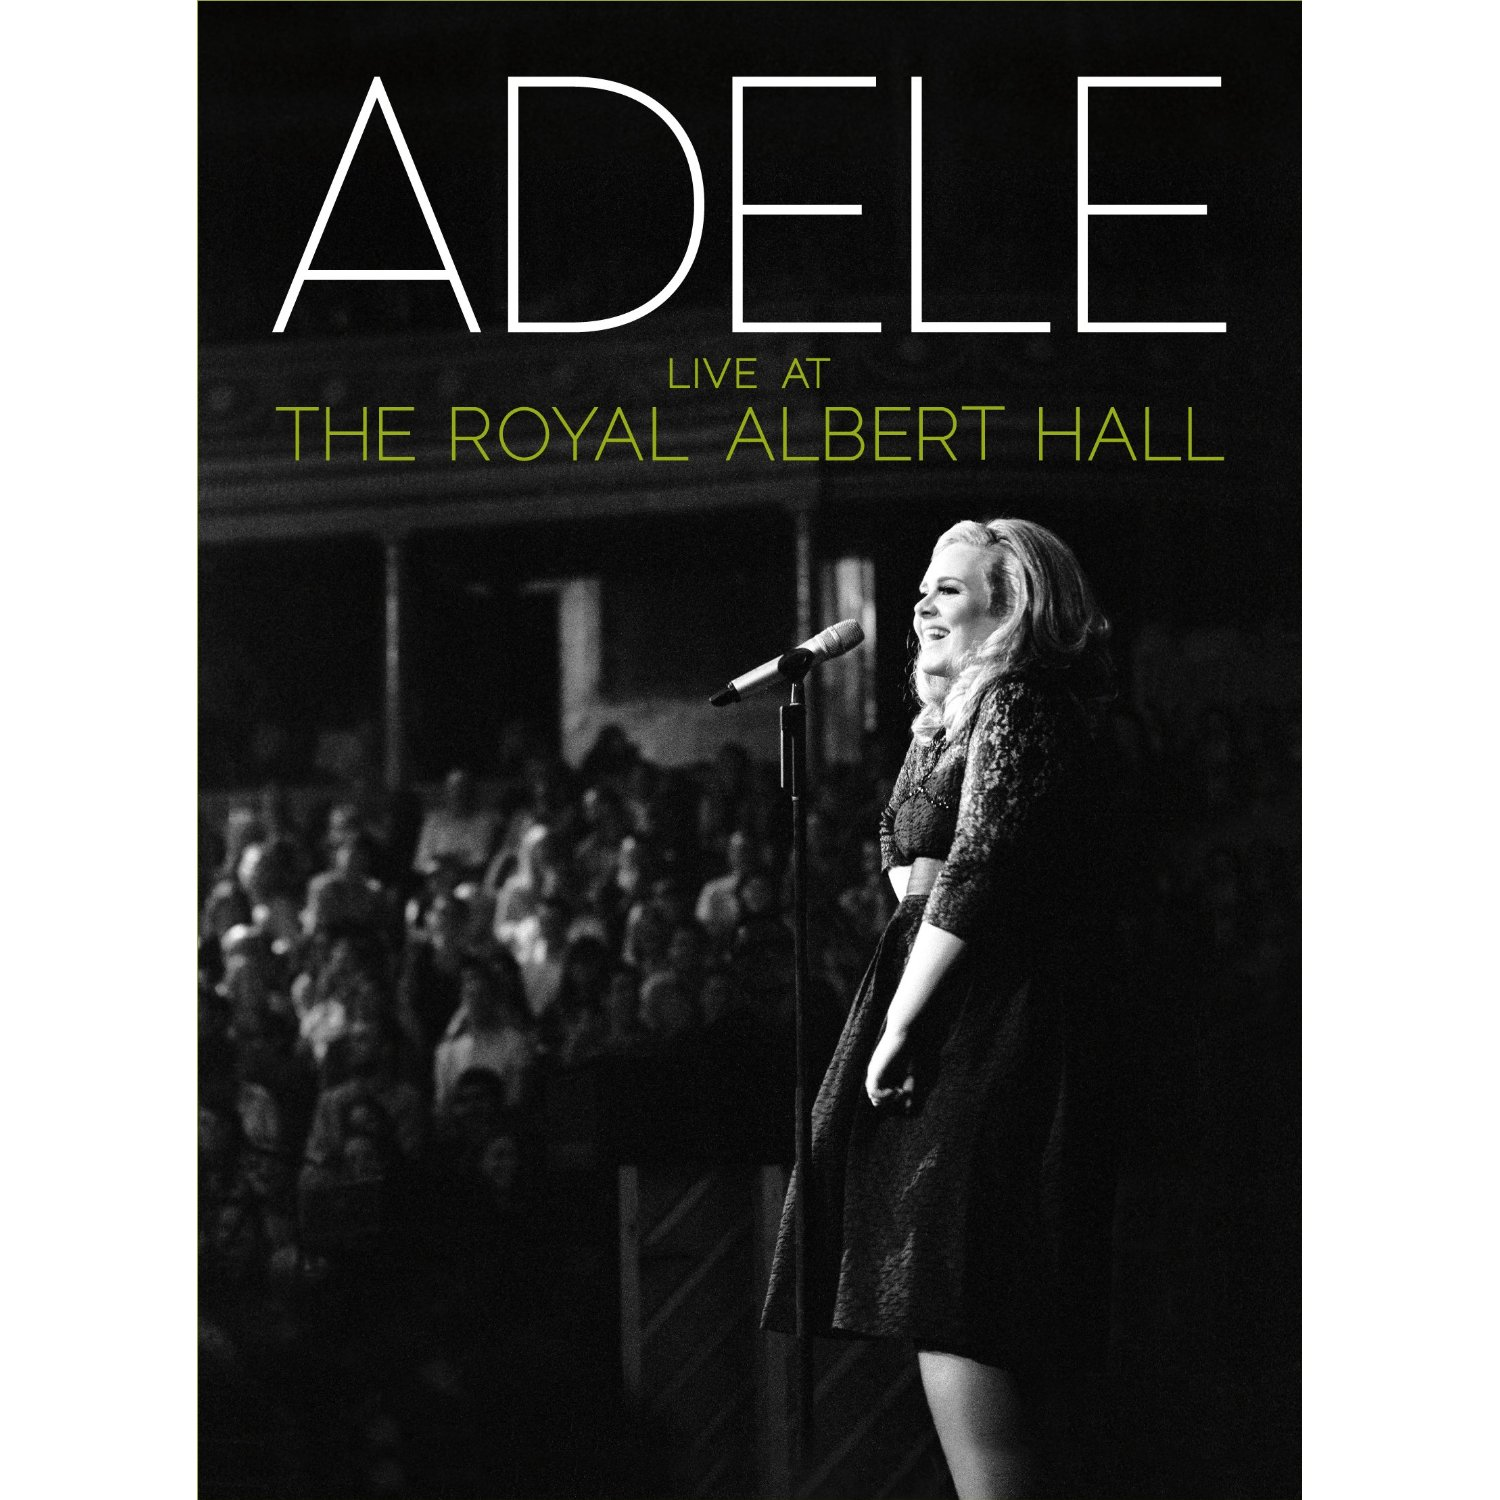 http://3.bp.blogspot.com/-YZhBdDEJMaA/TtFi90TMz1I/AAAAAAAAAgg/C_B5paVvwHM/s1600/Adele+Live+At+The+Royal+Albert+Hall+%2528DVD-CD%2529+%25282011%2529.jpg